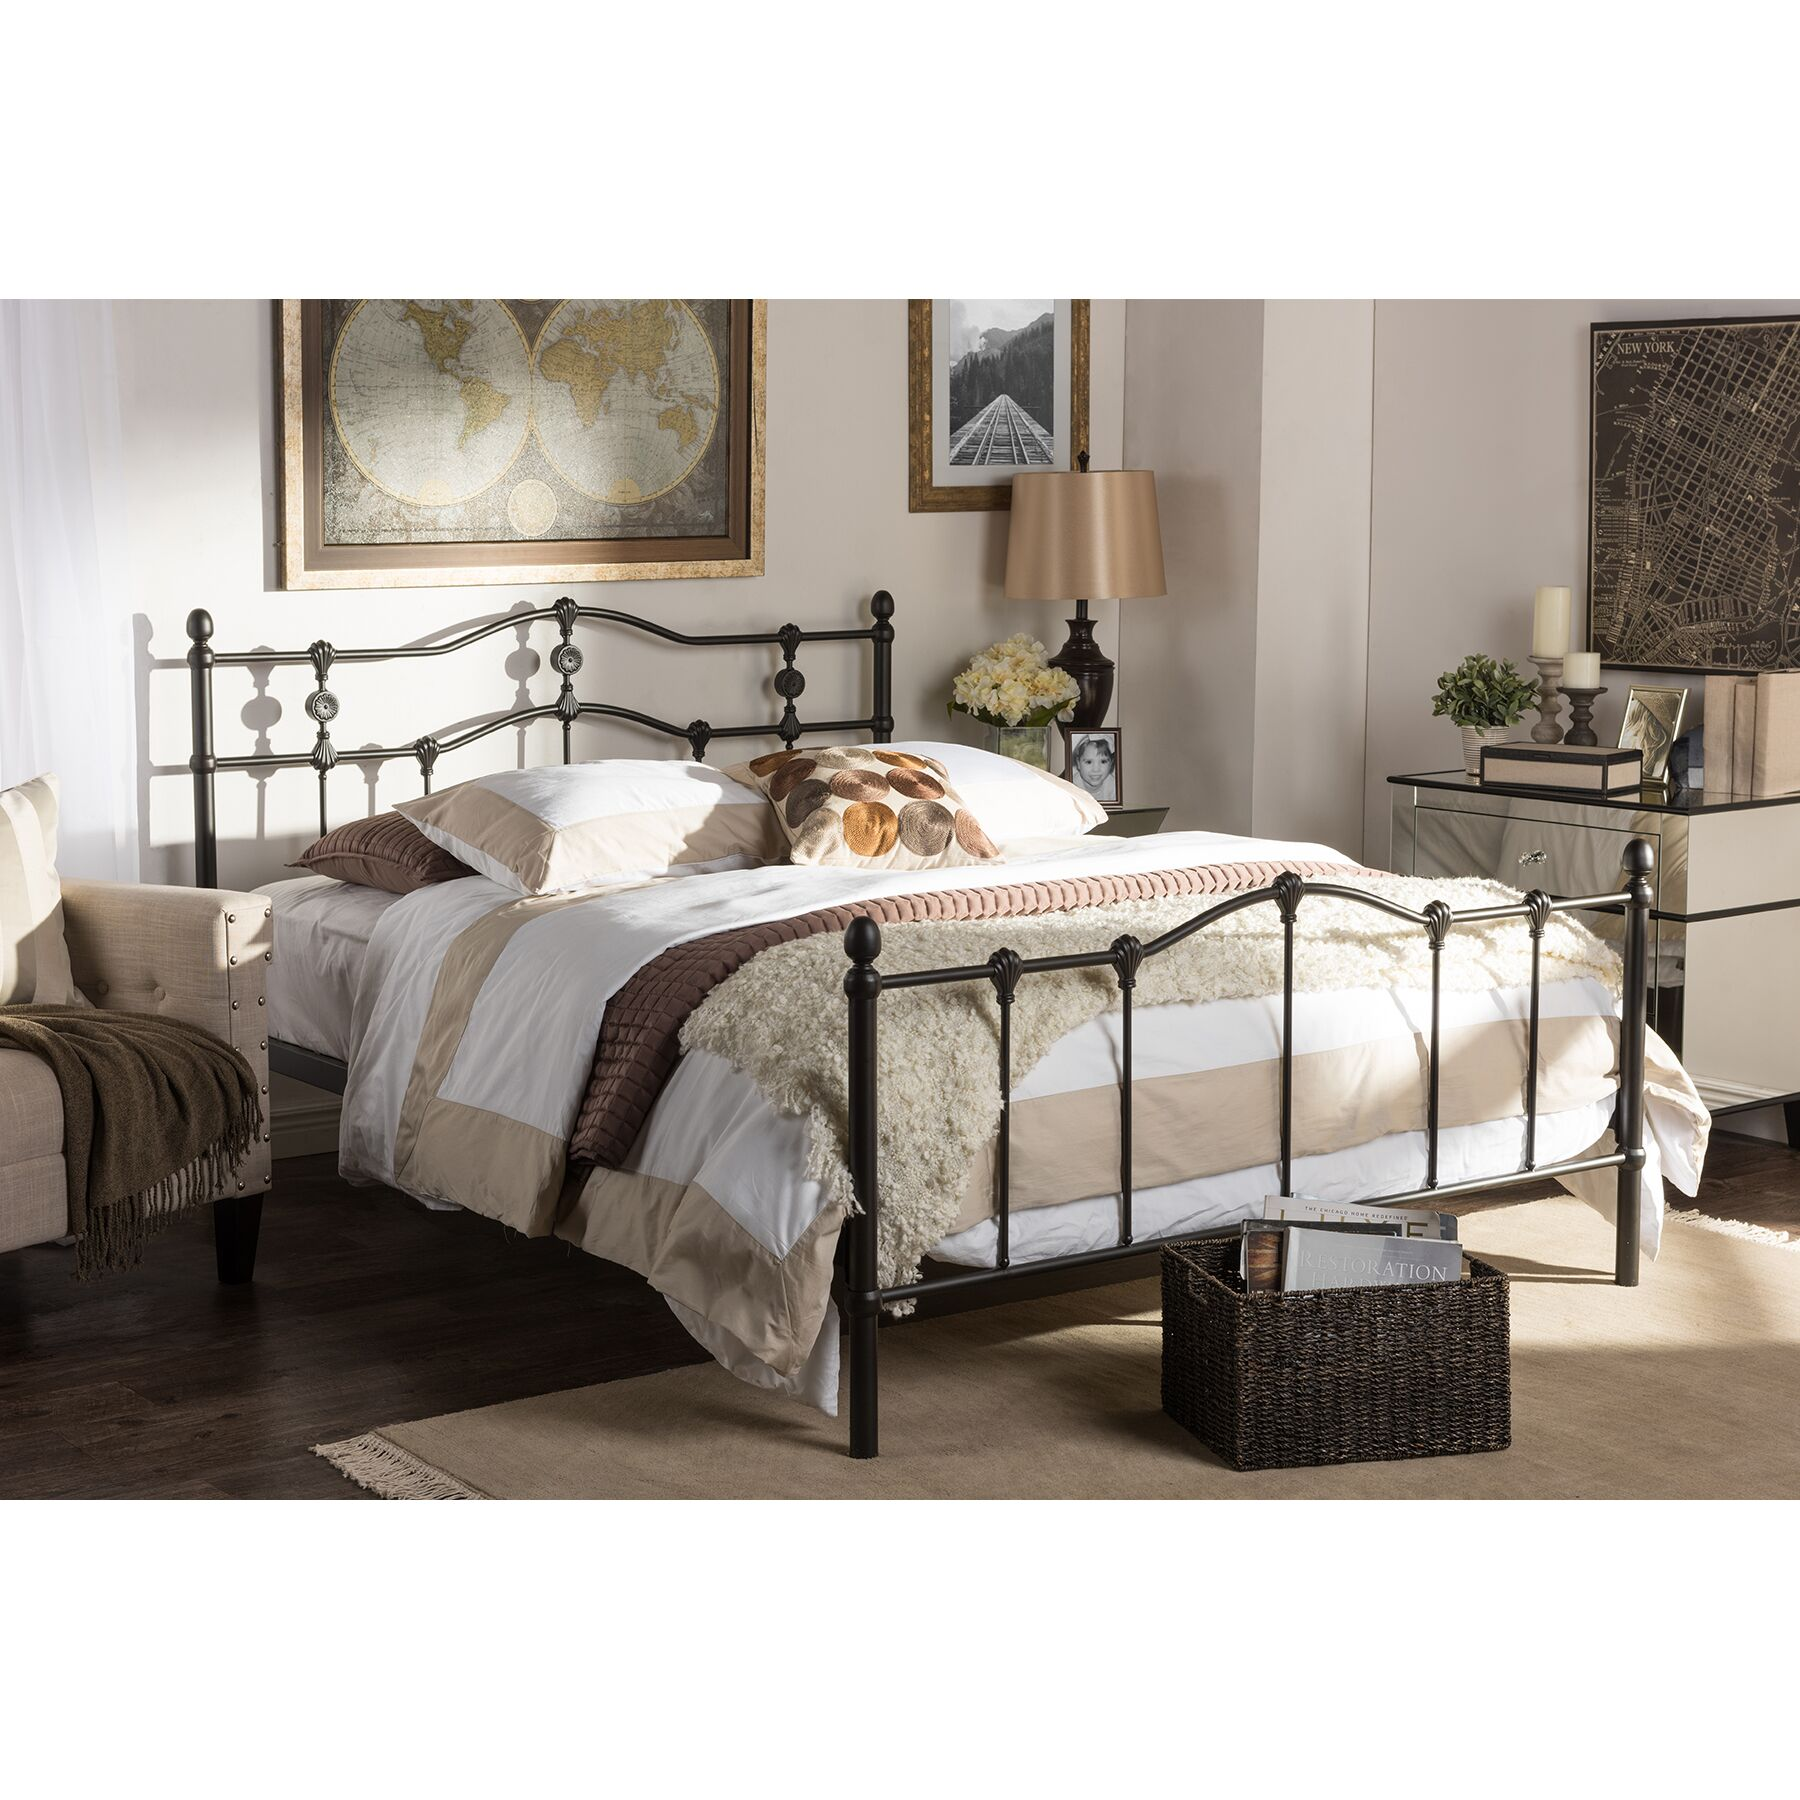 Cornwall Platform Bed Size: Full